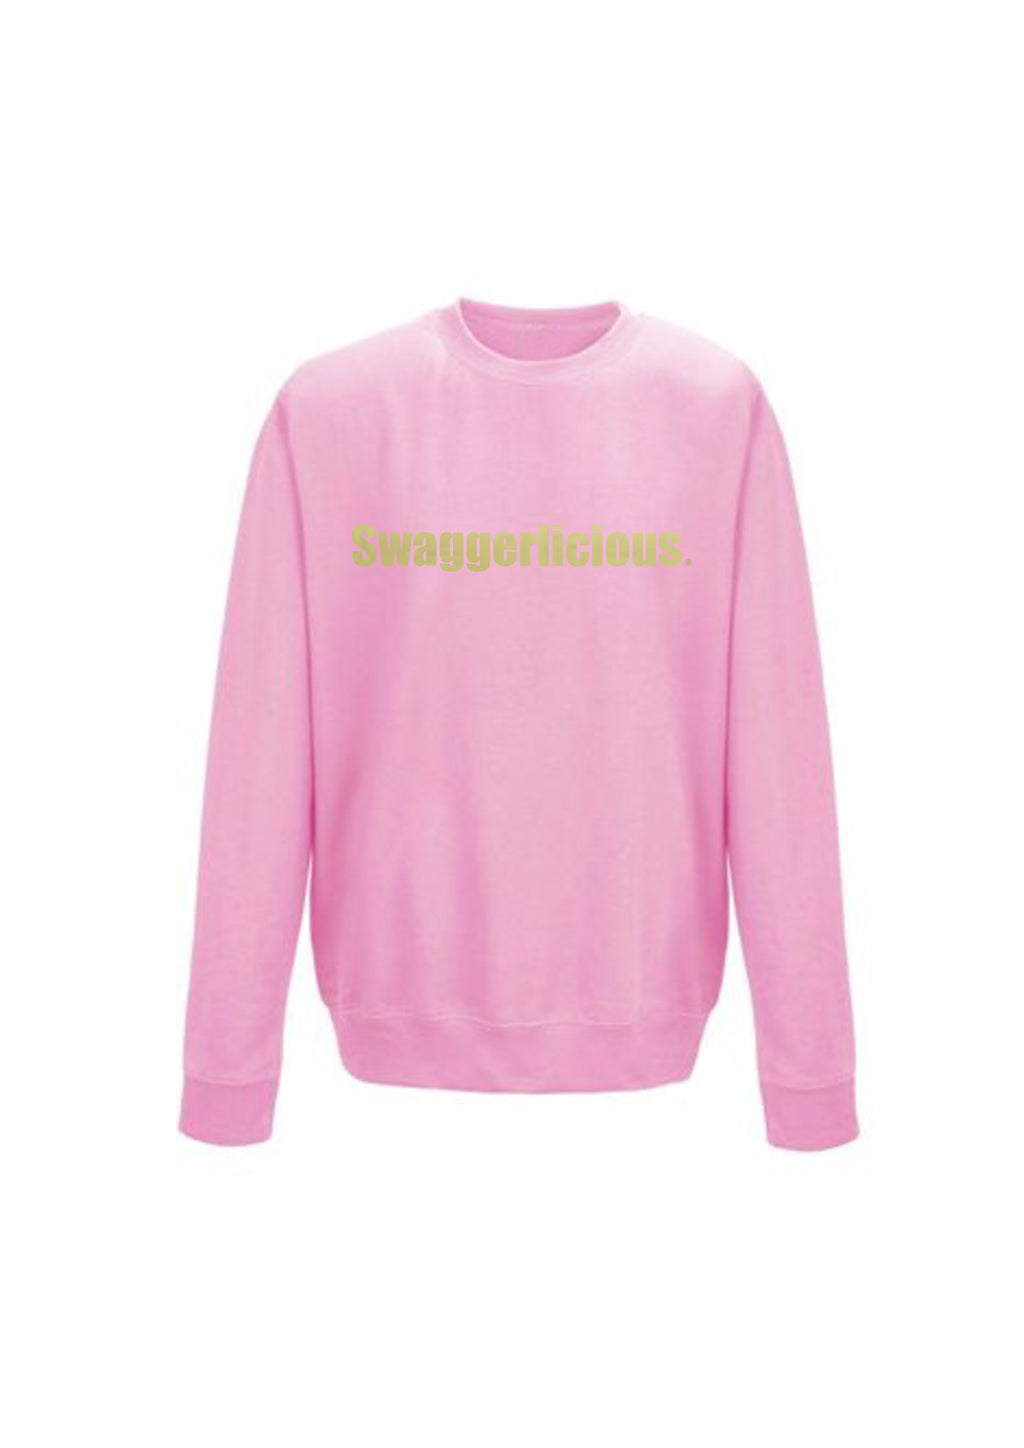 SWAGGERLICIOUS IMPACT SWEATSHIRT - BABY PINK - swaggerlicious-clothing.com